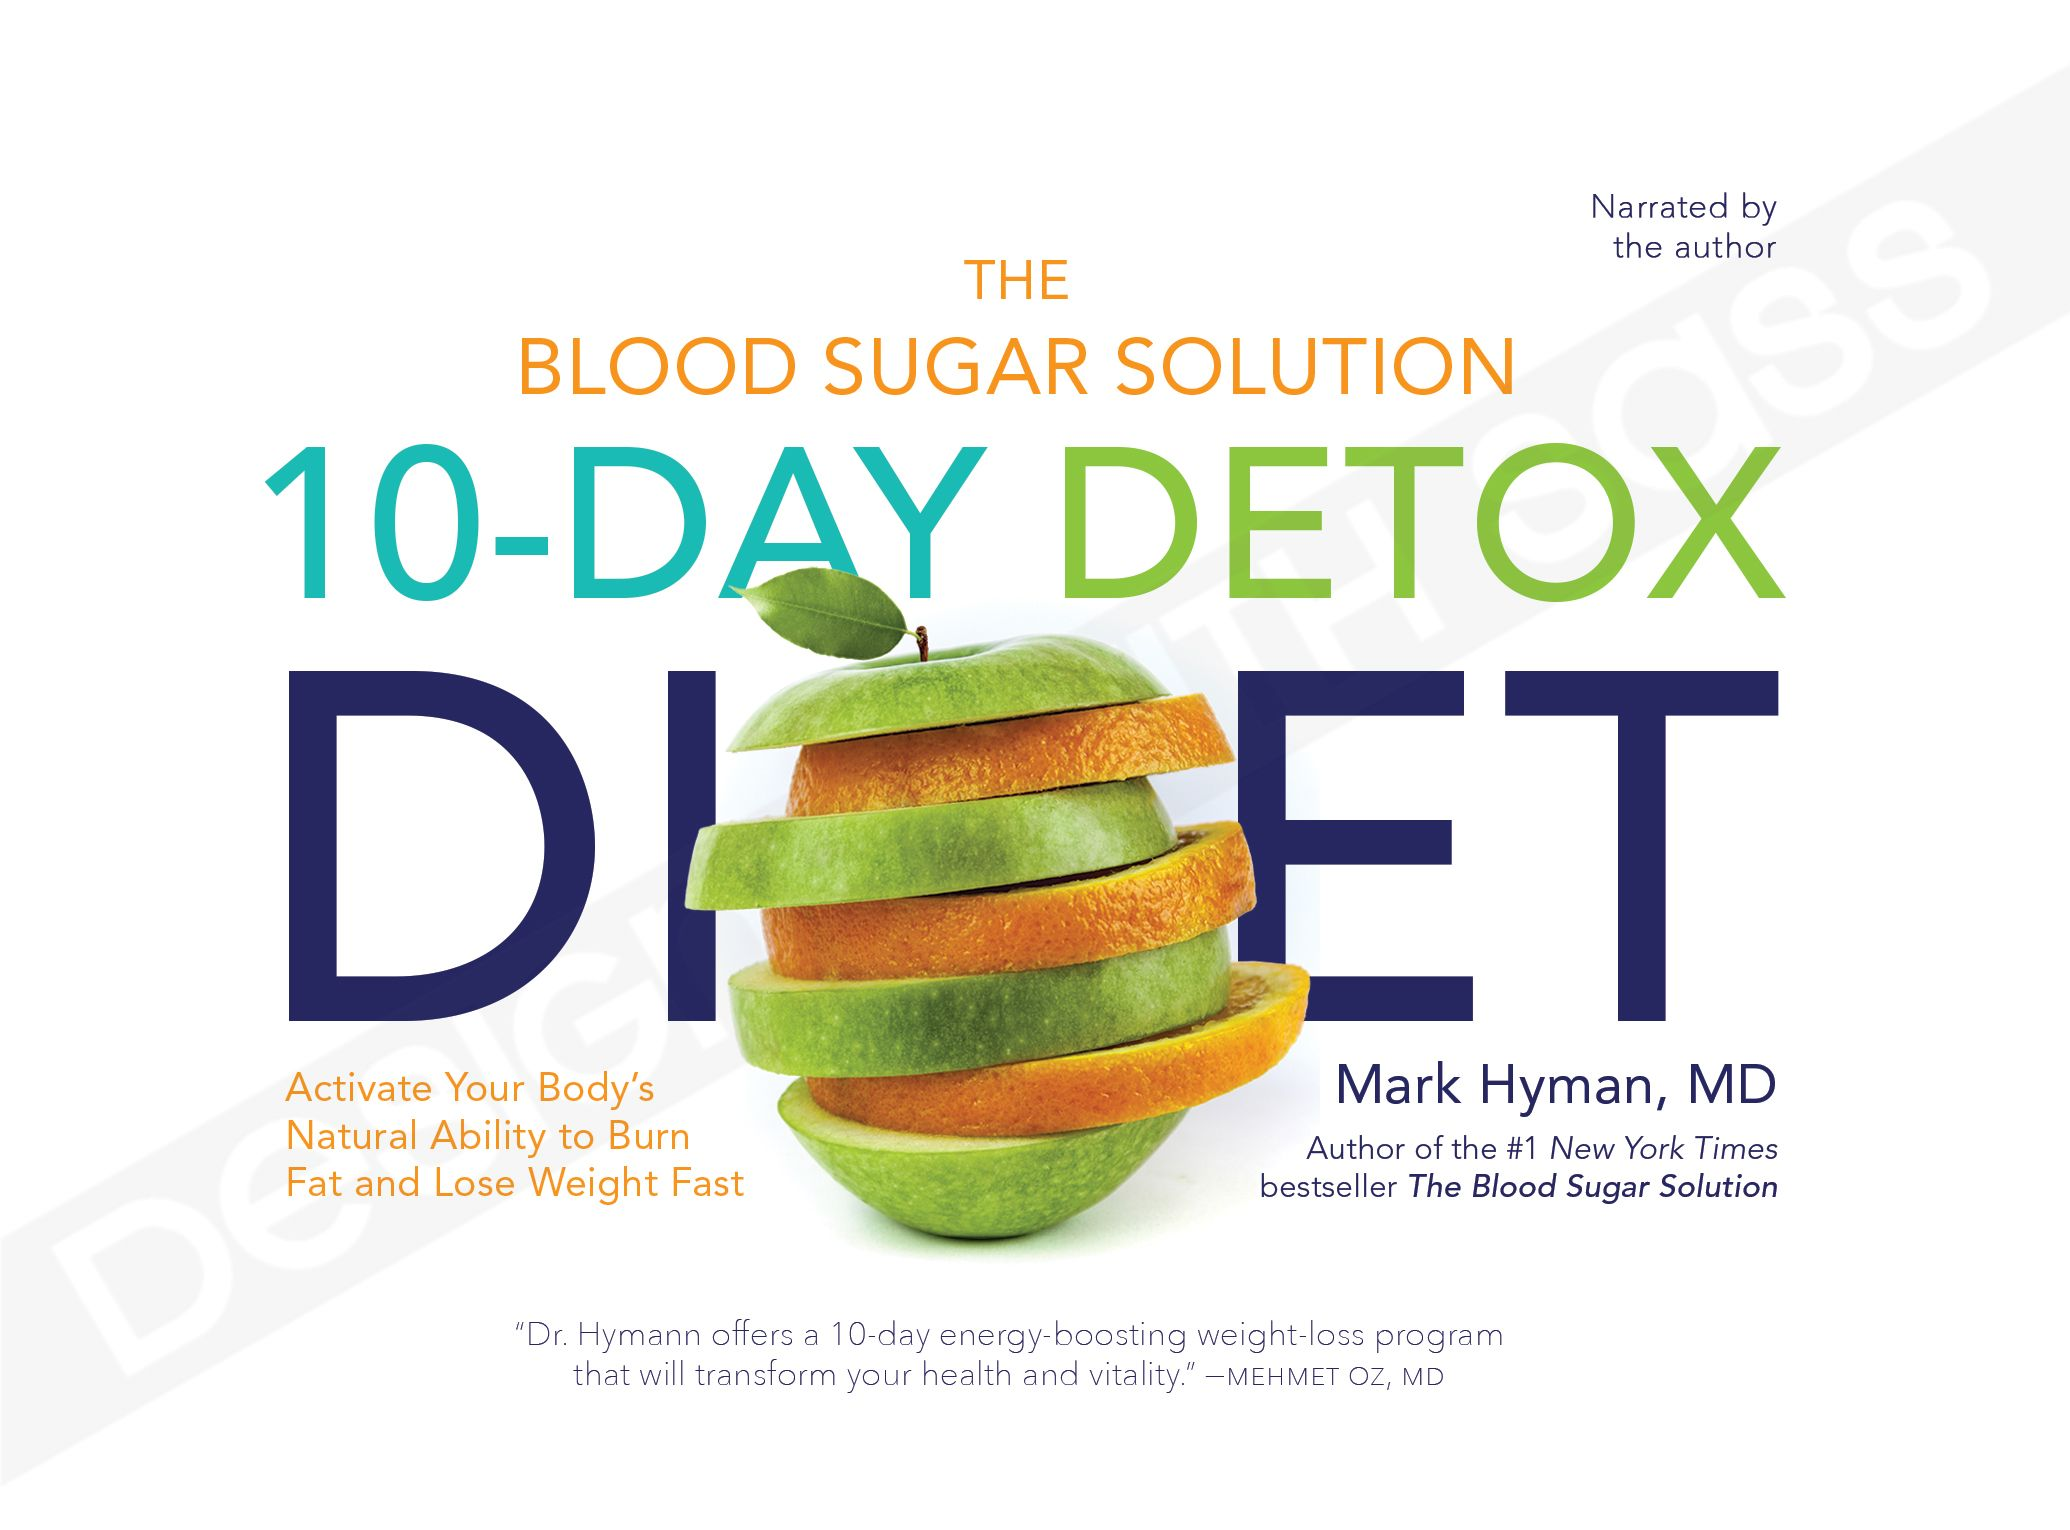 Book cover design by dws 10day detox diet by mark